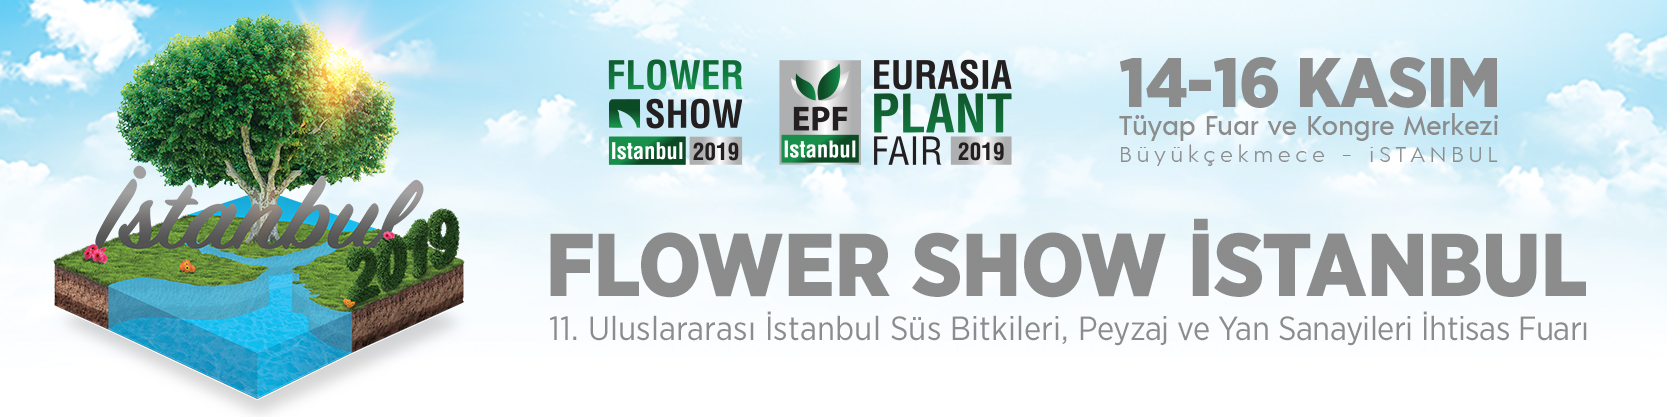 Flower Show İstanbul